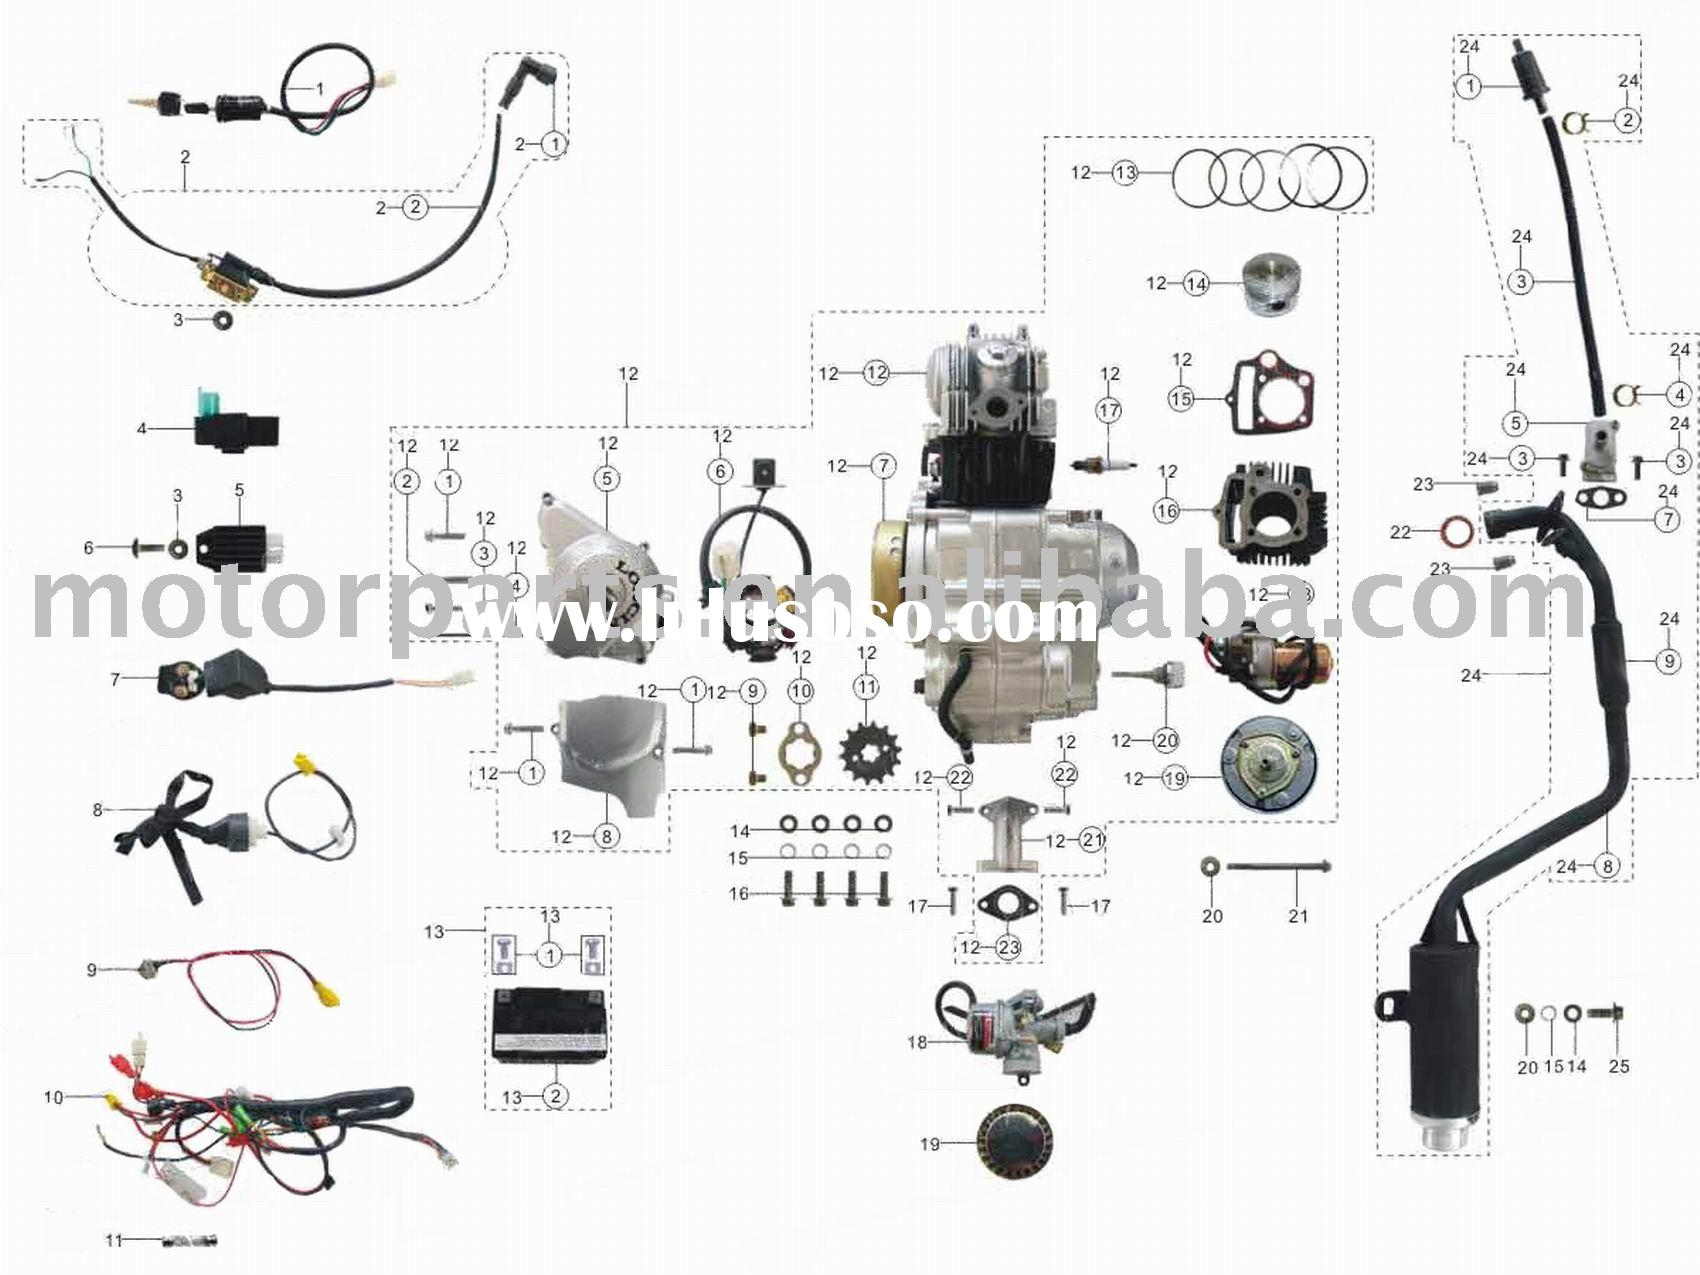 mini panther 110cc atv wiring diagram, mini panther 110cc